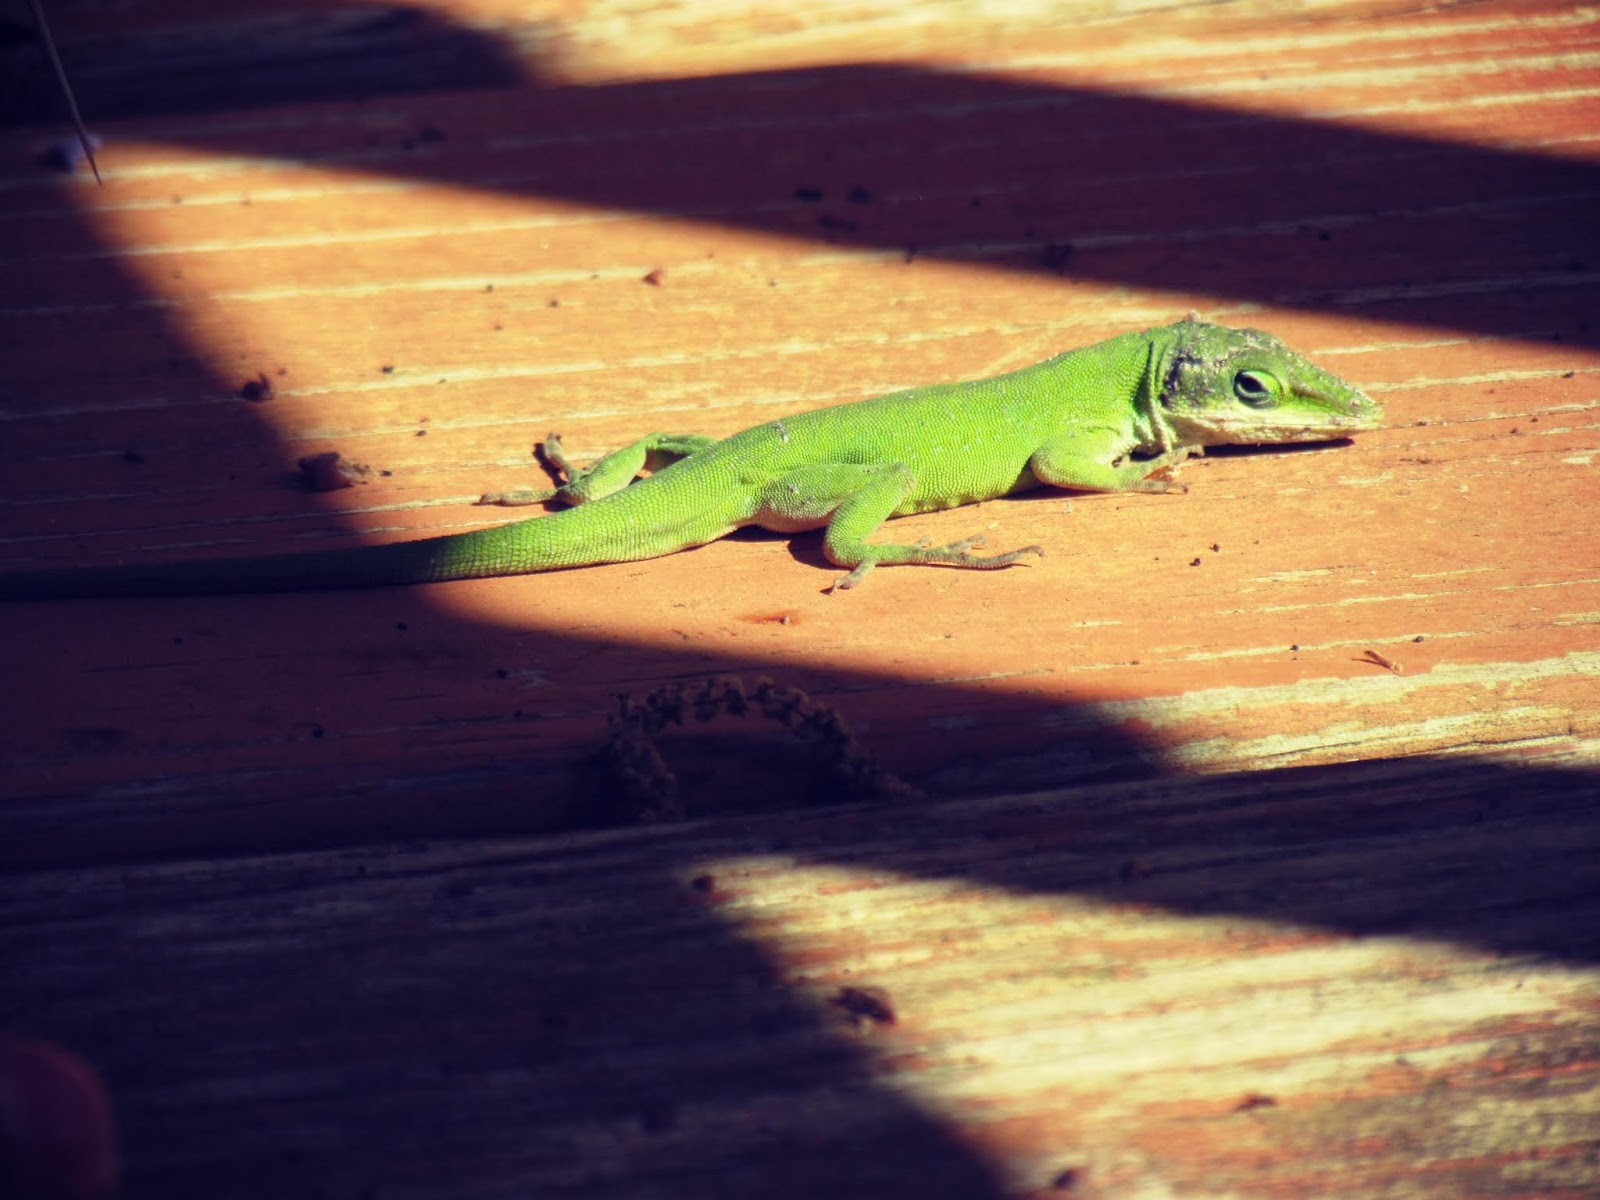 Bee pollen and a green wild lizard sunning on a wooden porch in mother nature on a sunny day in Florida